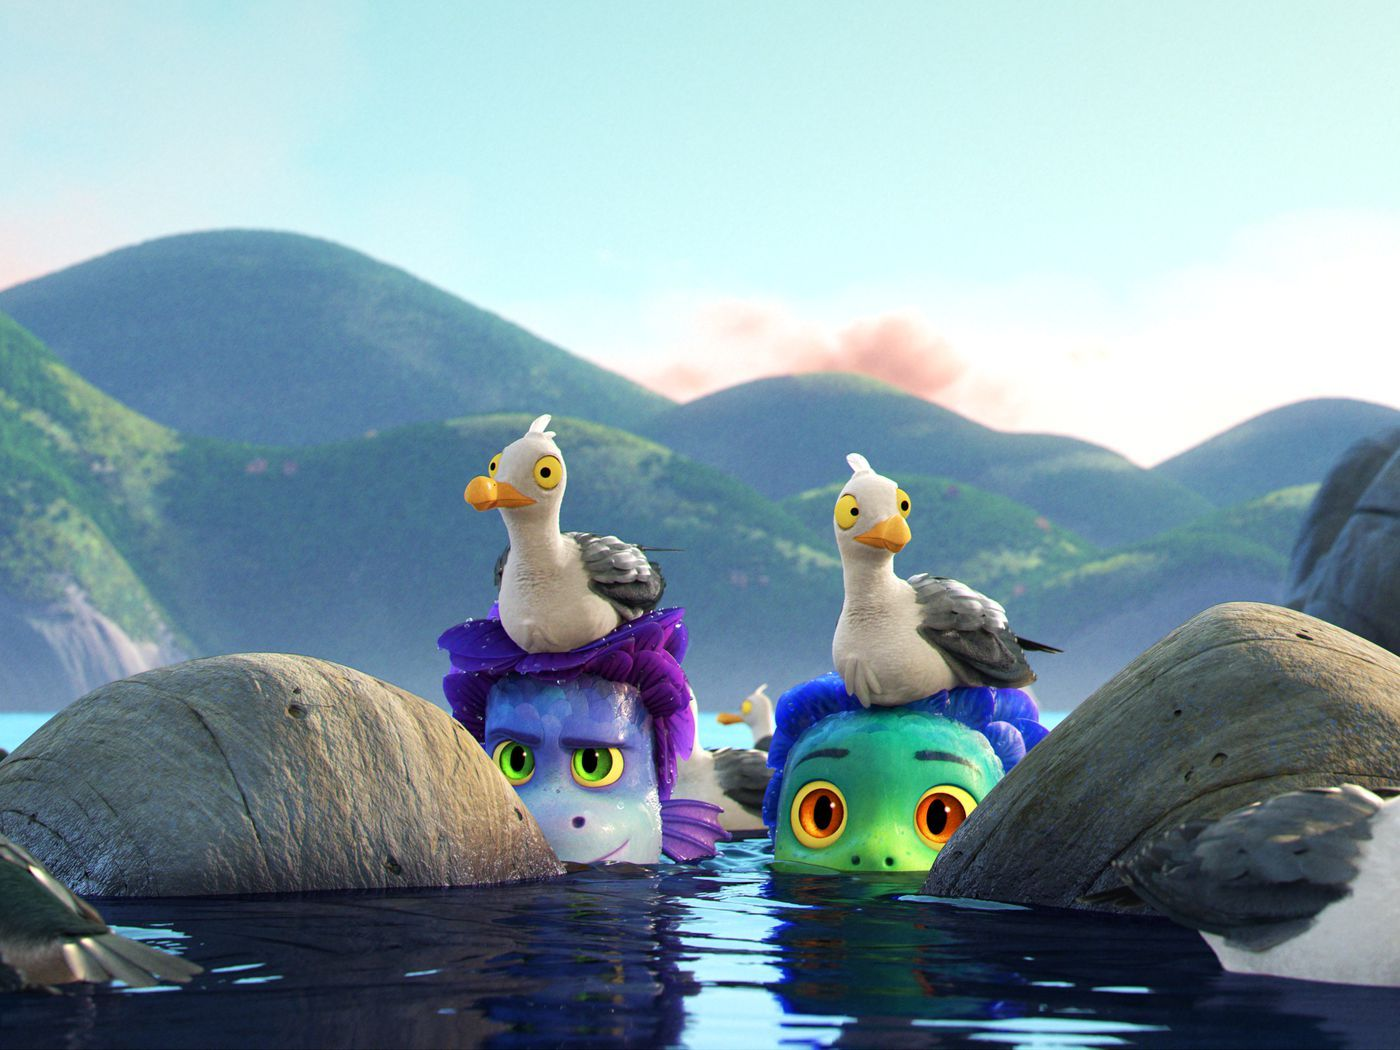 Luca review: Pixar's new movie is understated brilliance